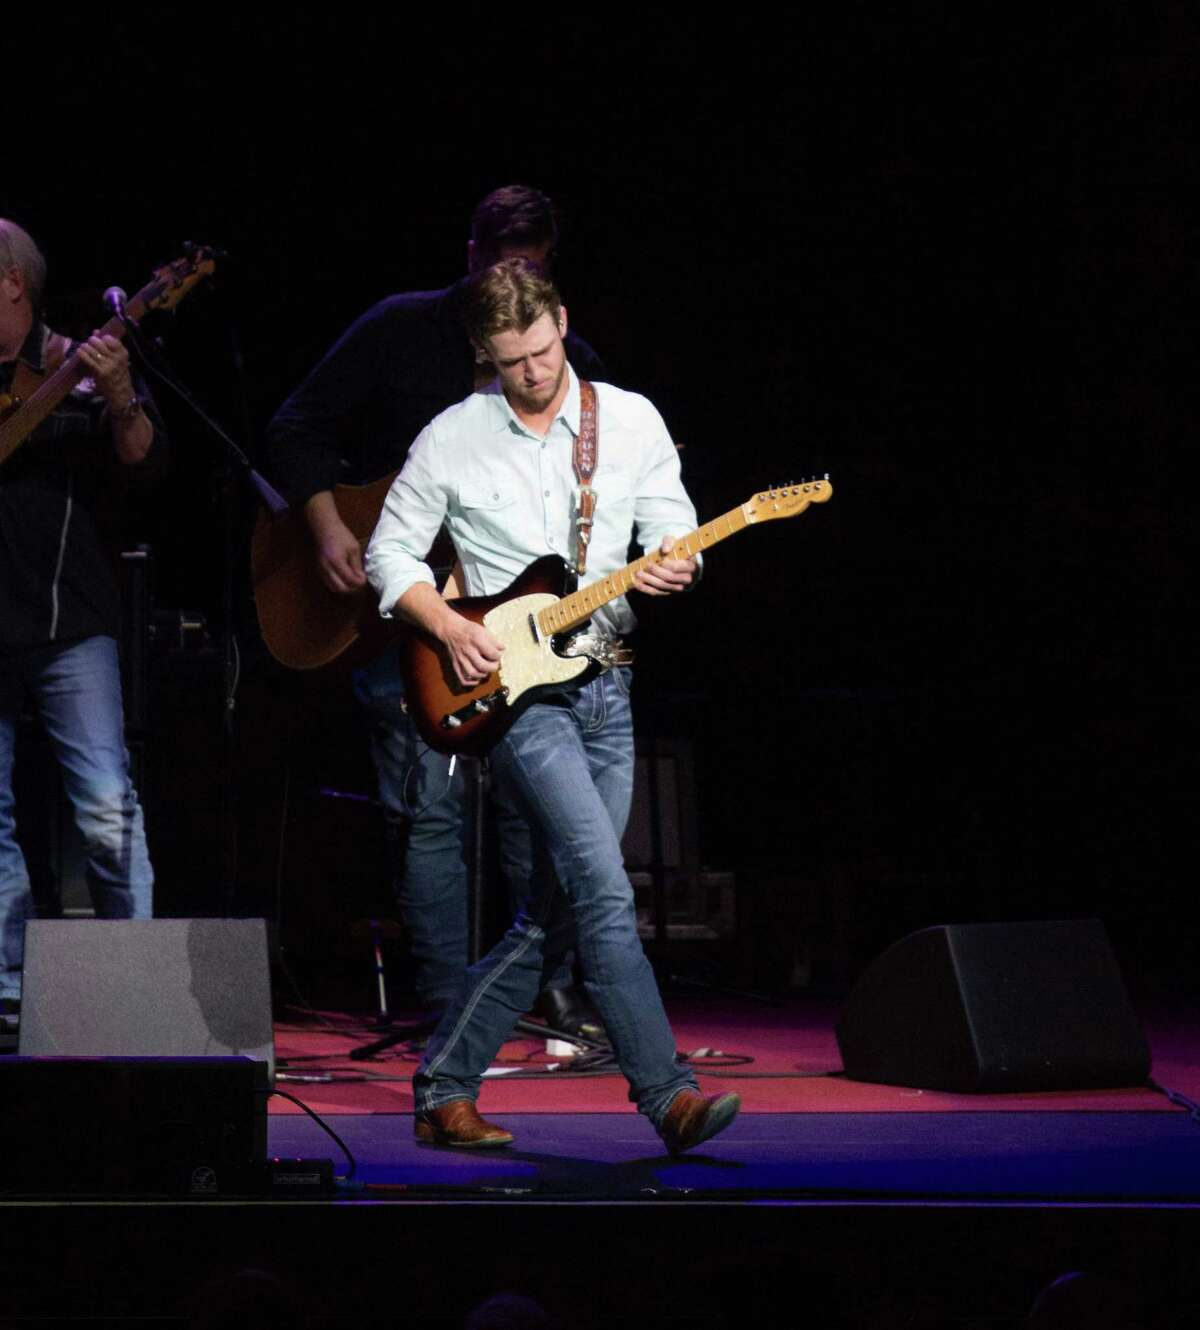 Hayden Baker performs before country legend Willie Nelson at the Smart Financial Centre in Sugar Land.